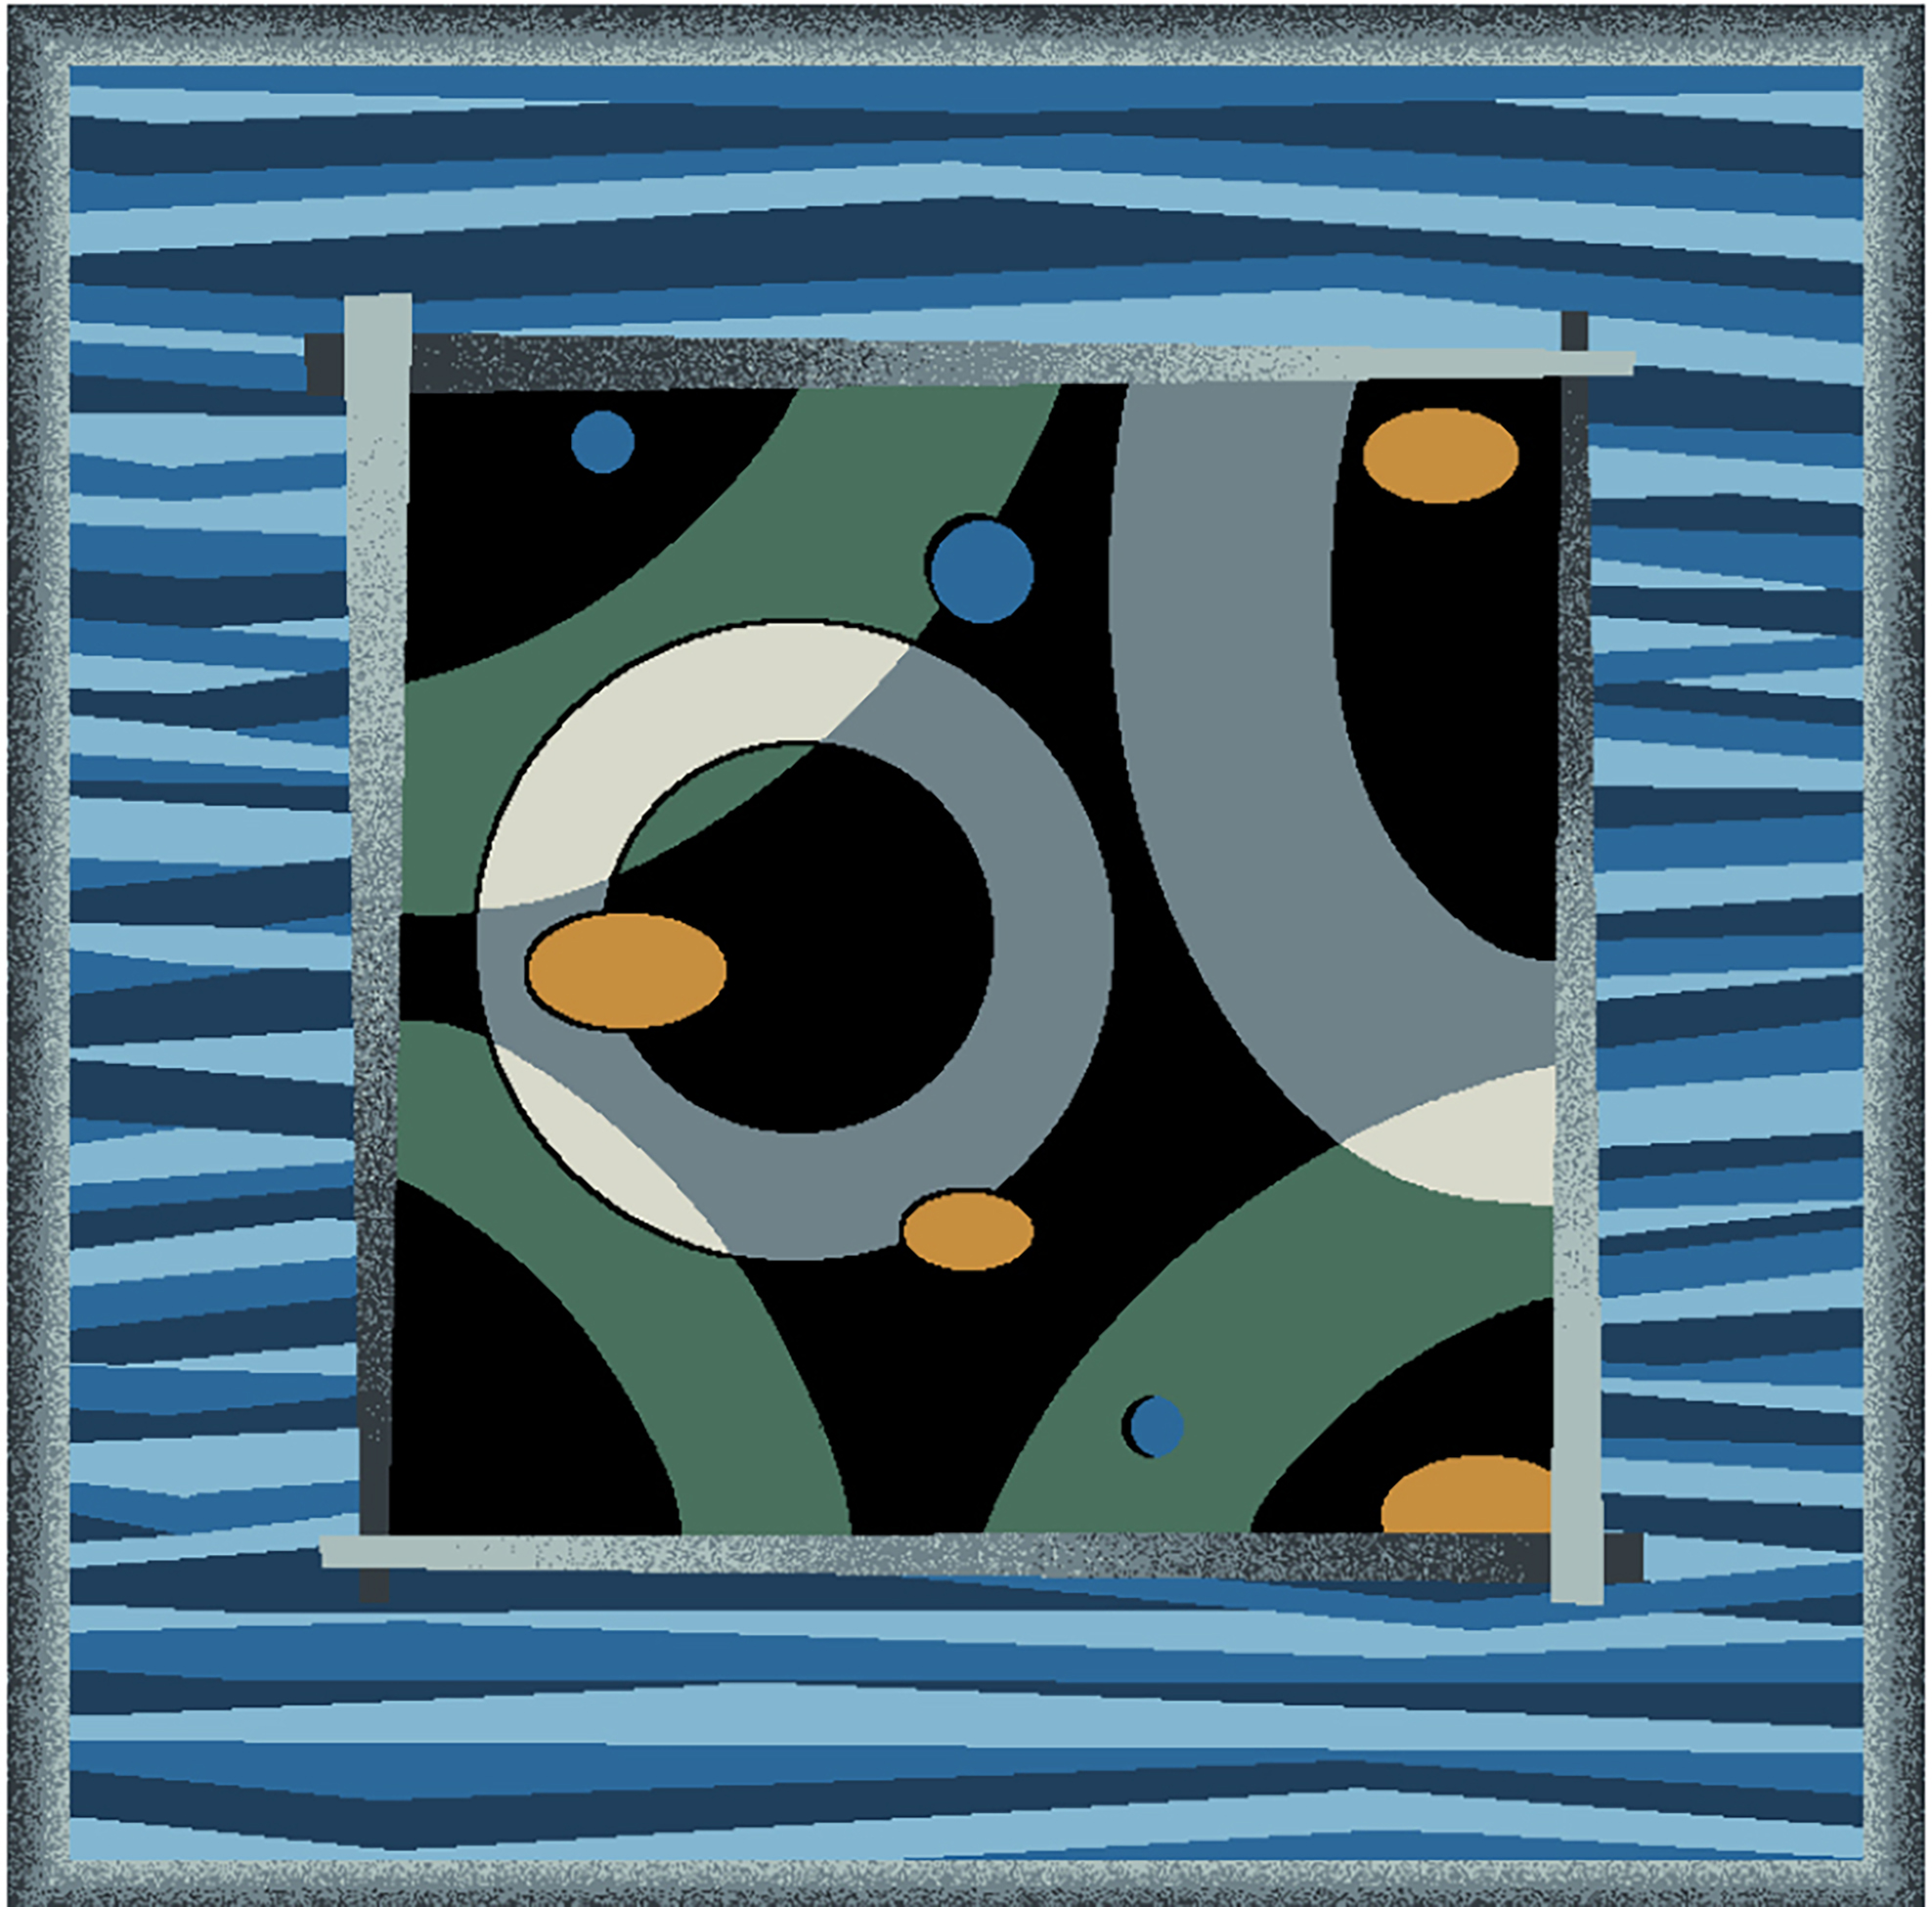 Abstracture-IMAGE 4.jpg